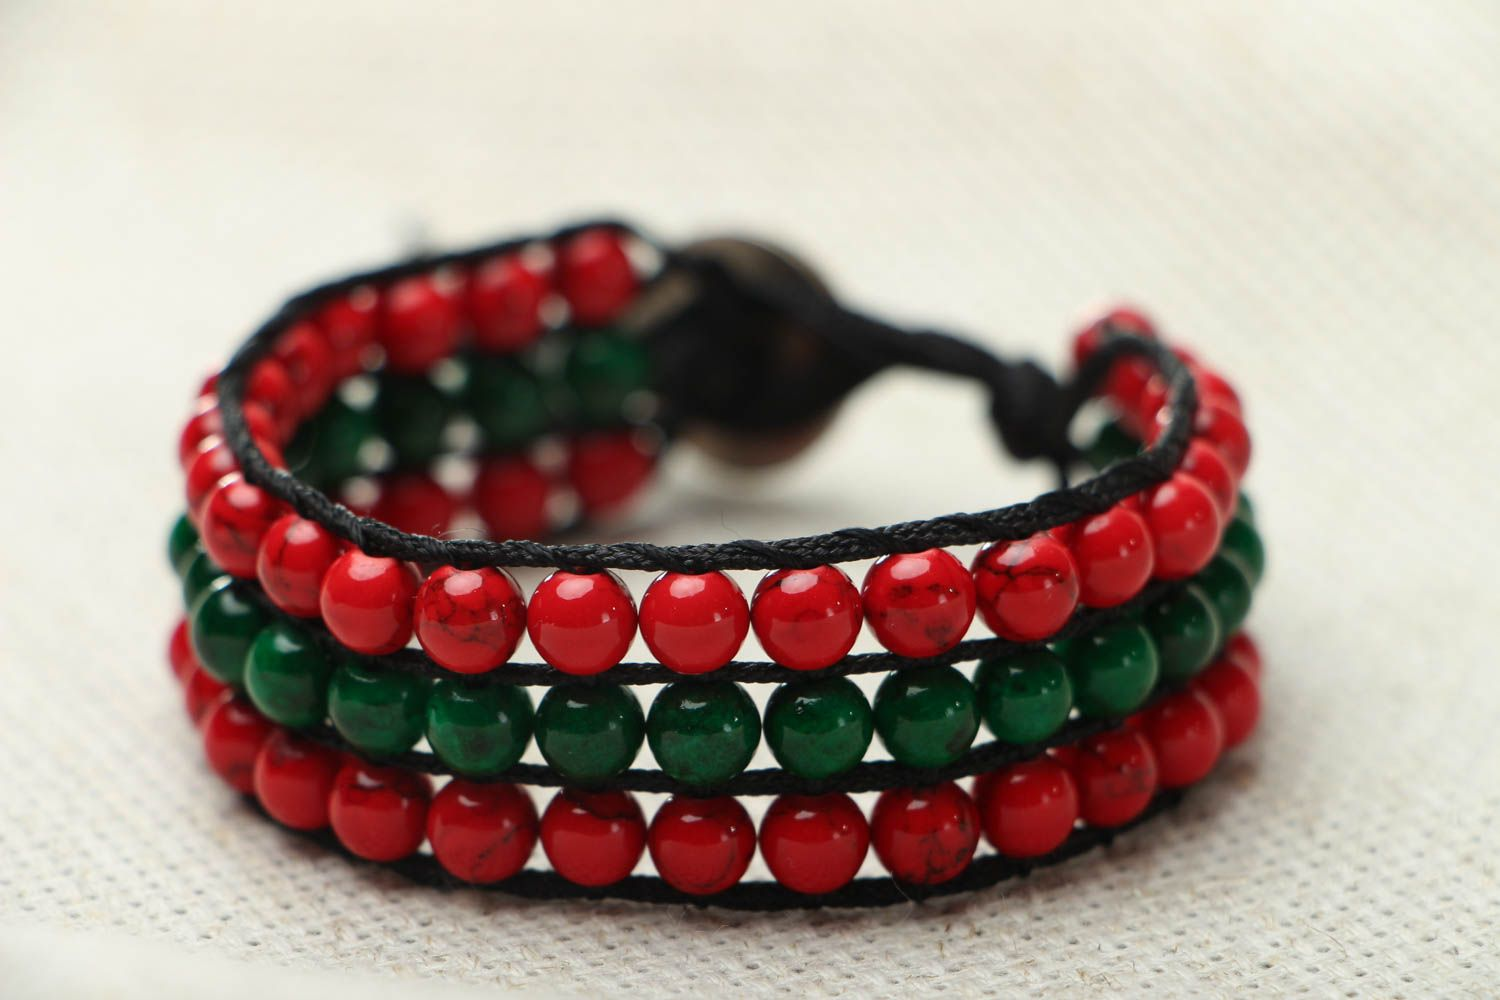 Bracelet with multi-colored beads photo 2